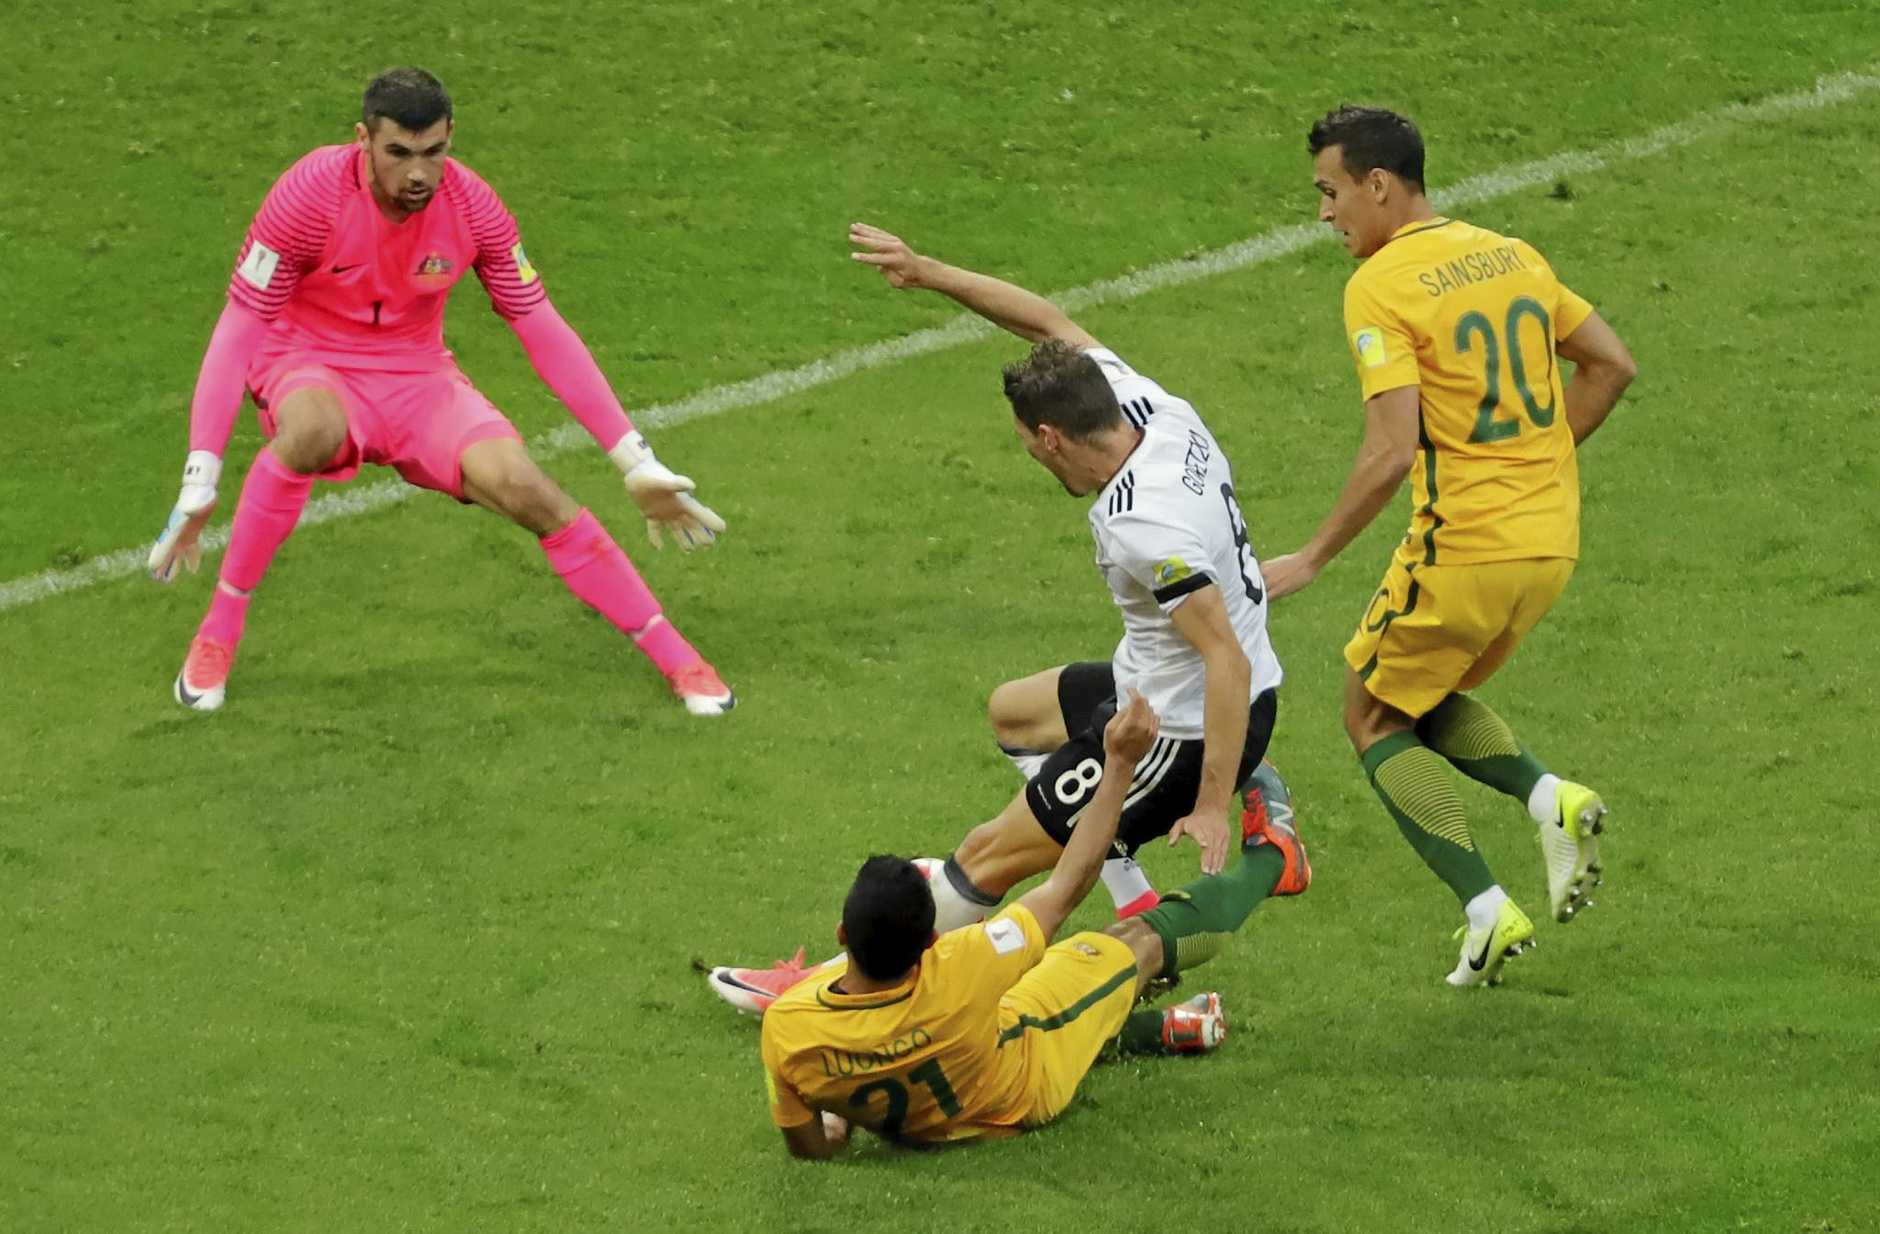 Germany's Leon Goretzka is fouled by Australia's Massimo Luongo, front, during the Confederations Cup, Group B soccer match between Australia and Germany, at the Fisht Stadium in Sochi, Russia, Monday, June 19, 2017. (AP Photo/Sergei Grits)